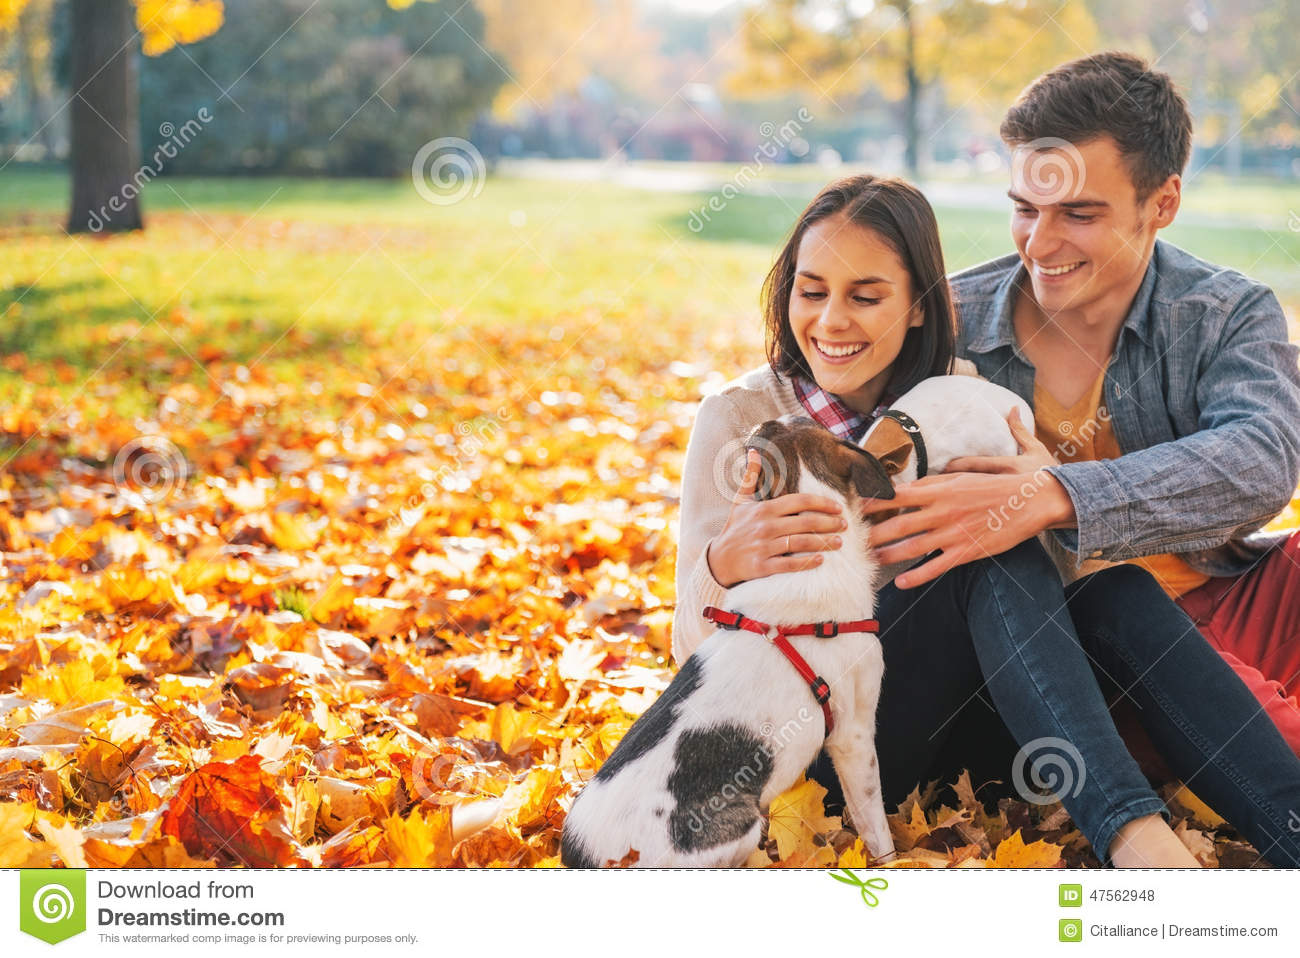 Portrait of happy young couple sitting outdoors in autumn park